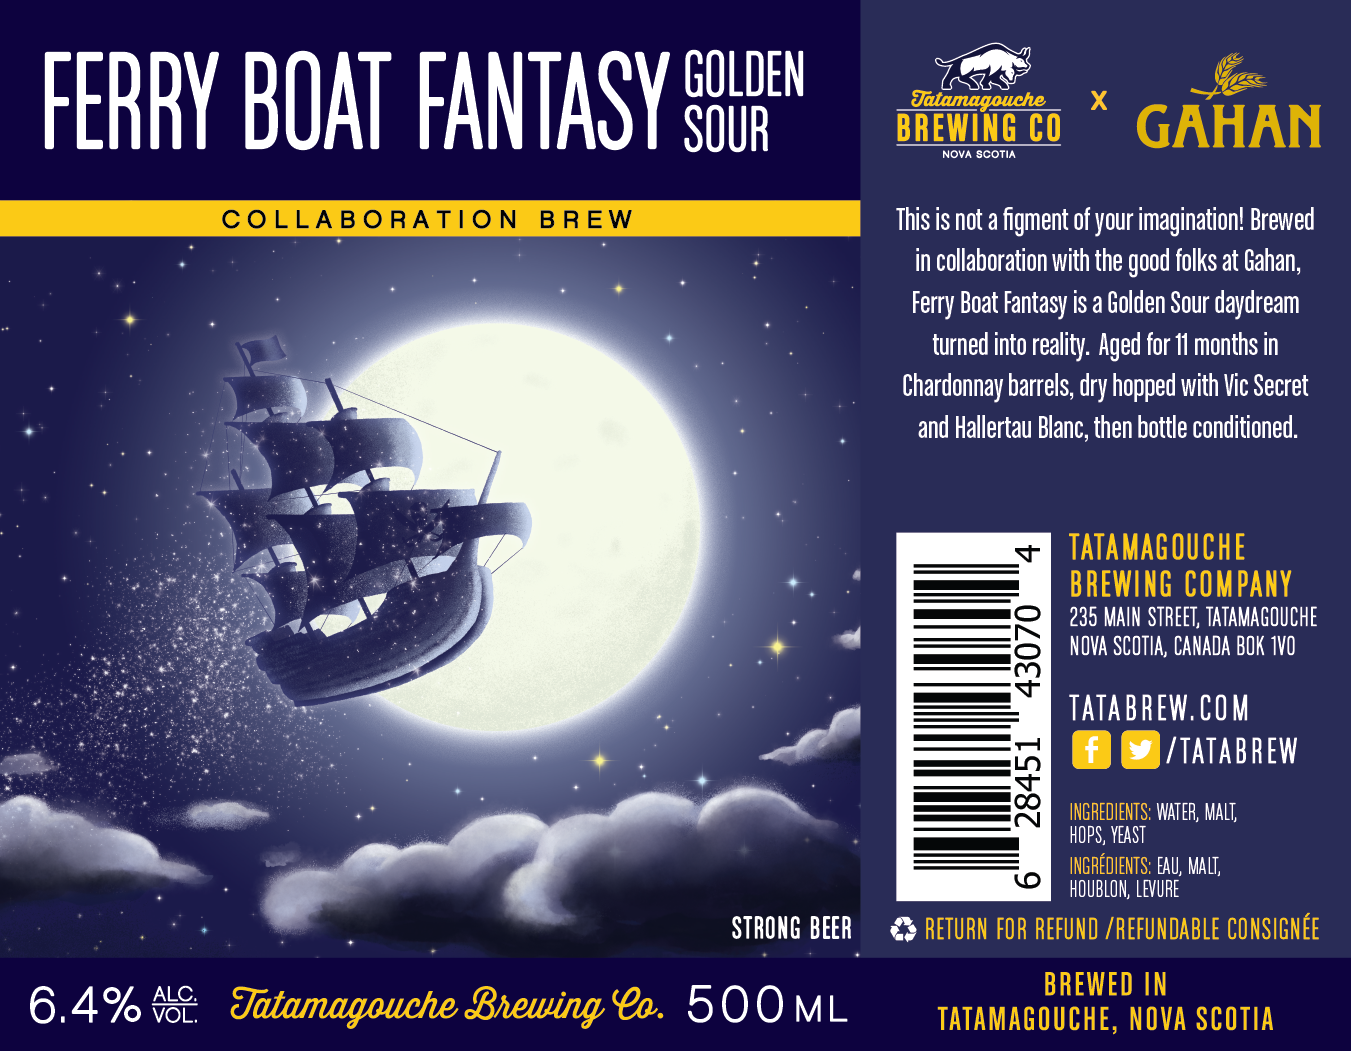 Ferry Boat Fantasy Golden Sour